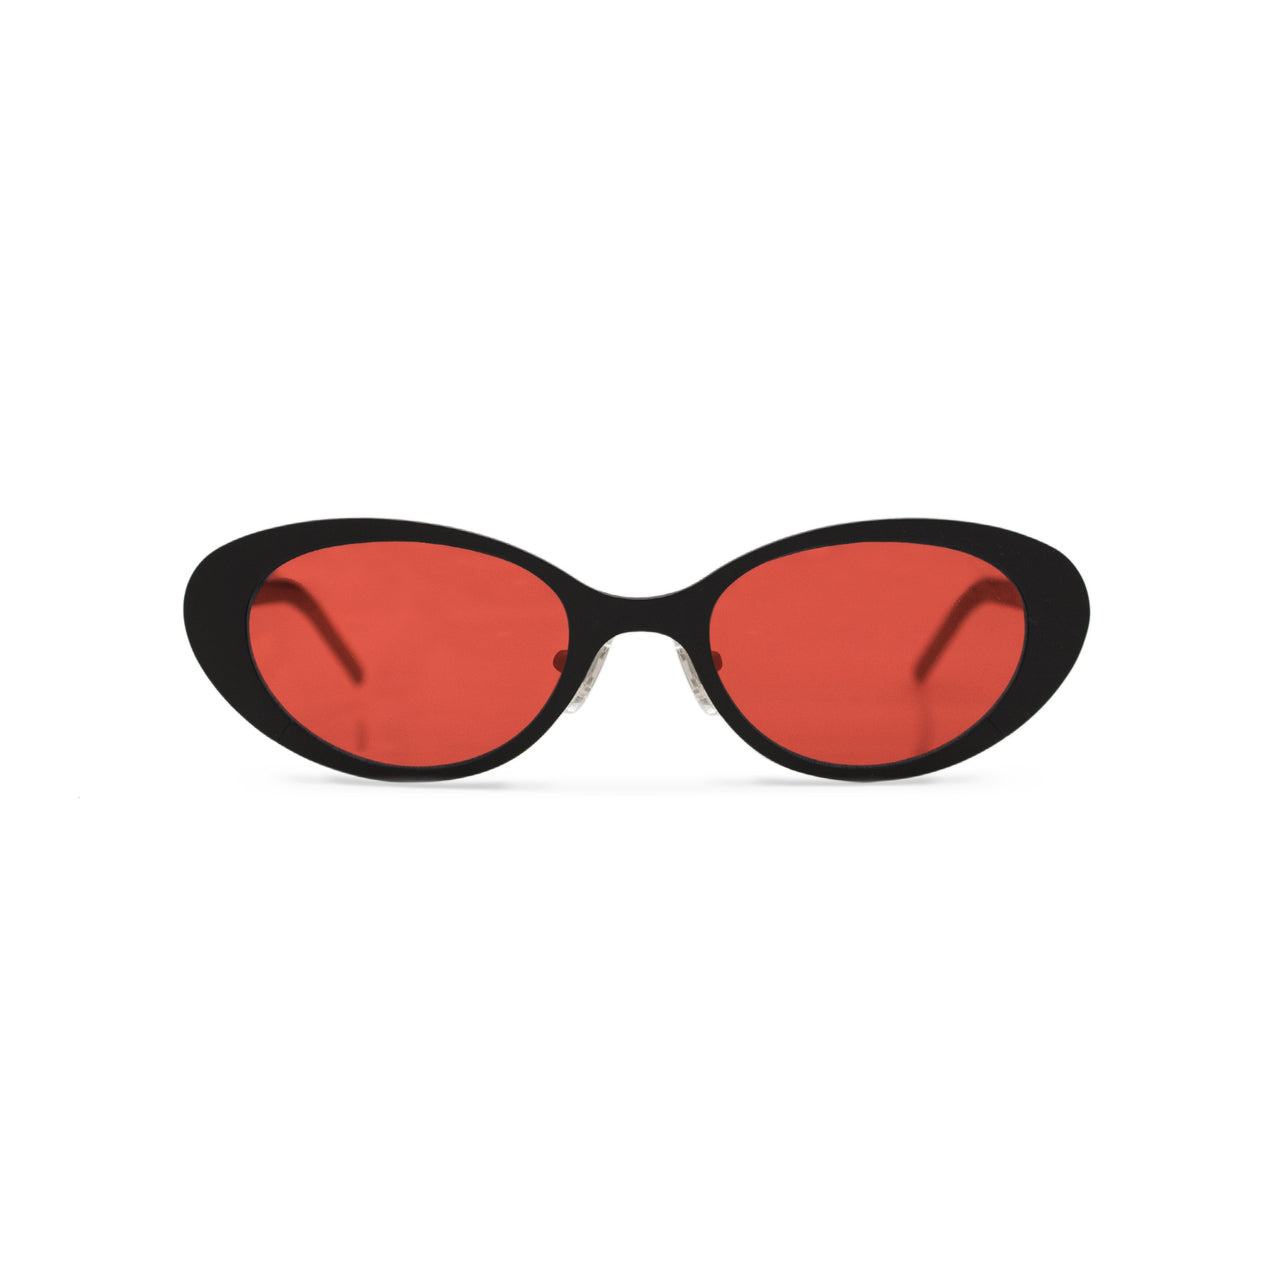 Metal. Matte Black. Scarlet Lens. - BLYSZAK eyewear eyewear - eyewear, optical, sunglasses